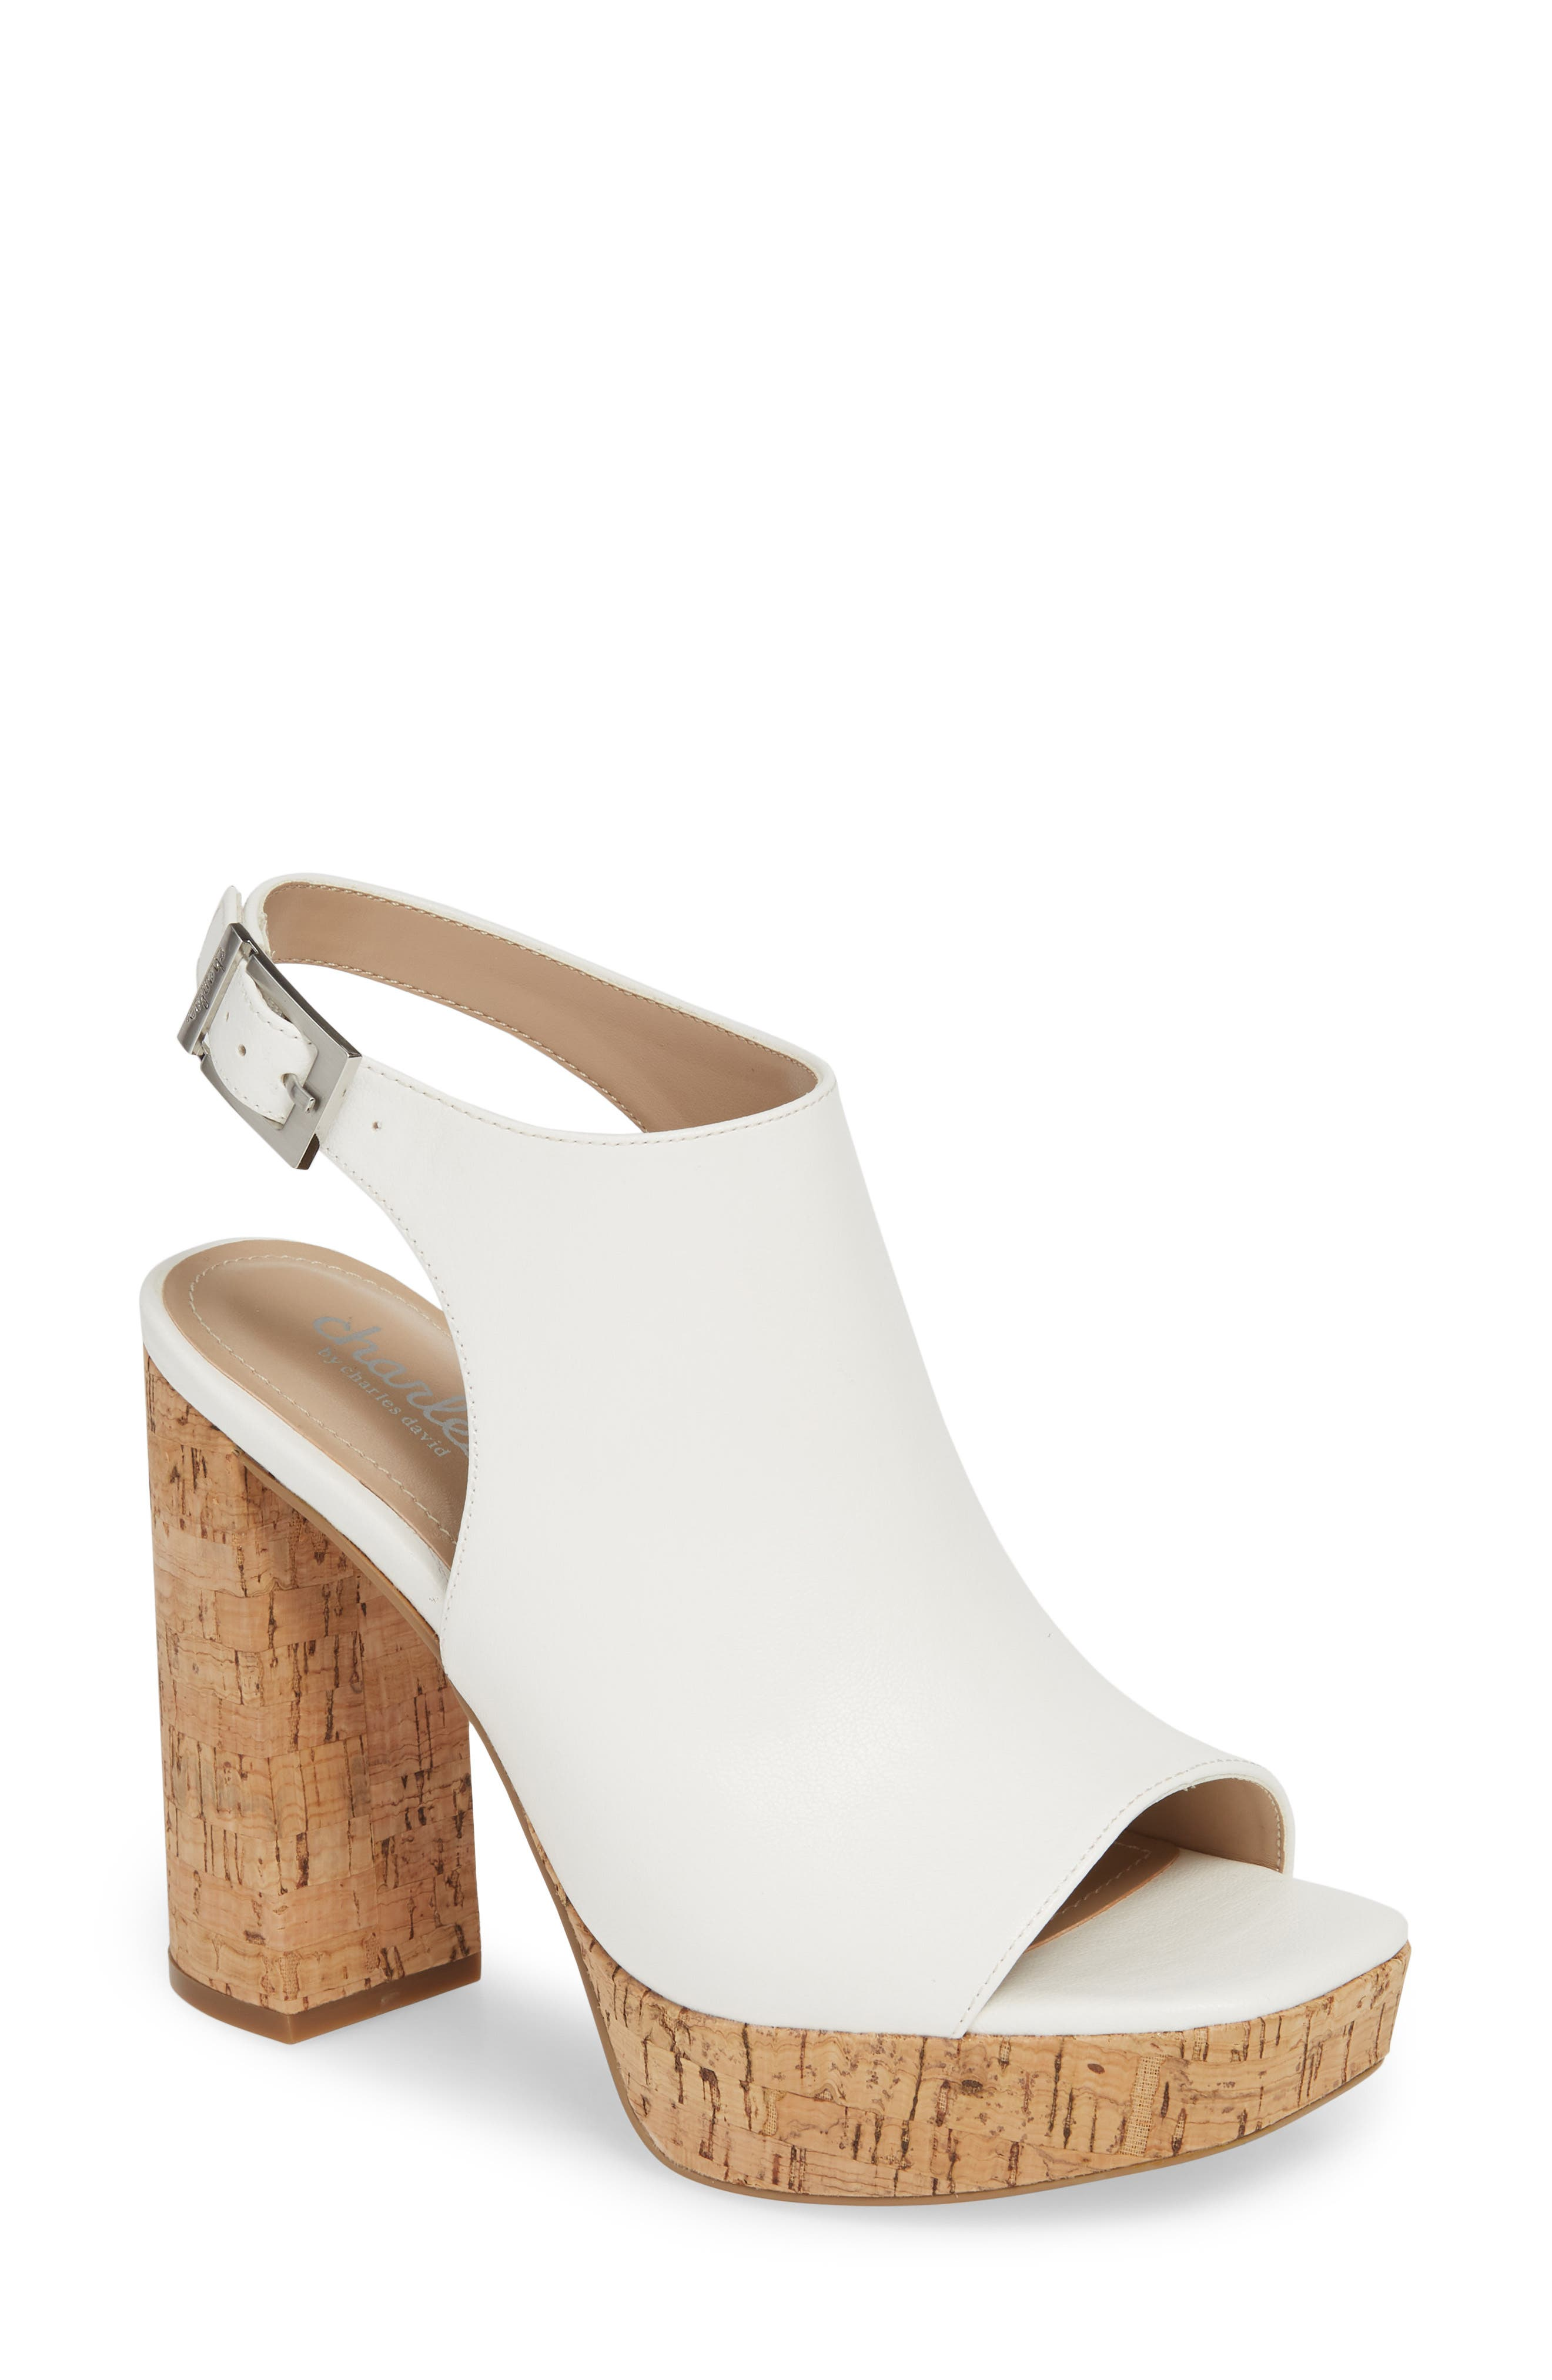 CHARLES BY CHARLES DAVID Imani Platform Sandal, Main, color, WHITE FAUX LEATHER